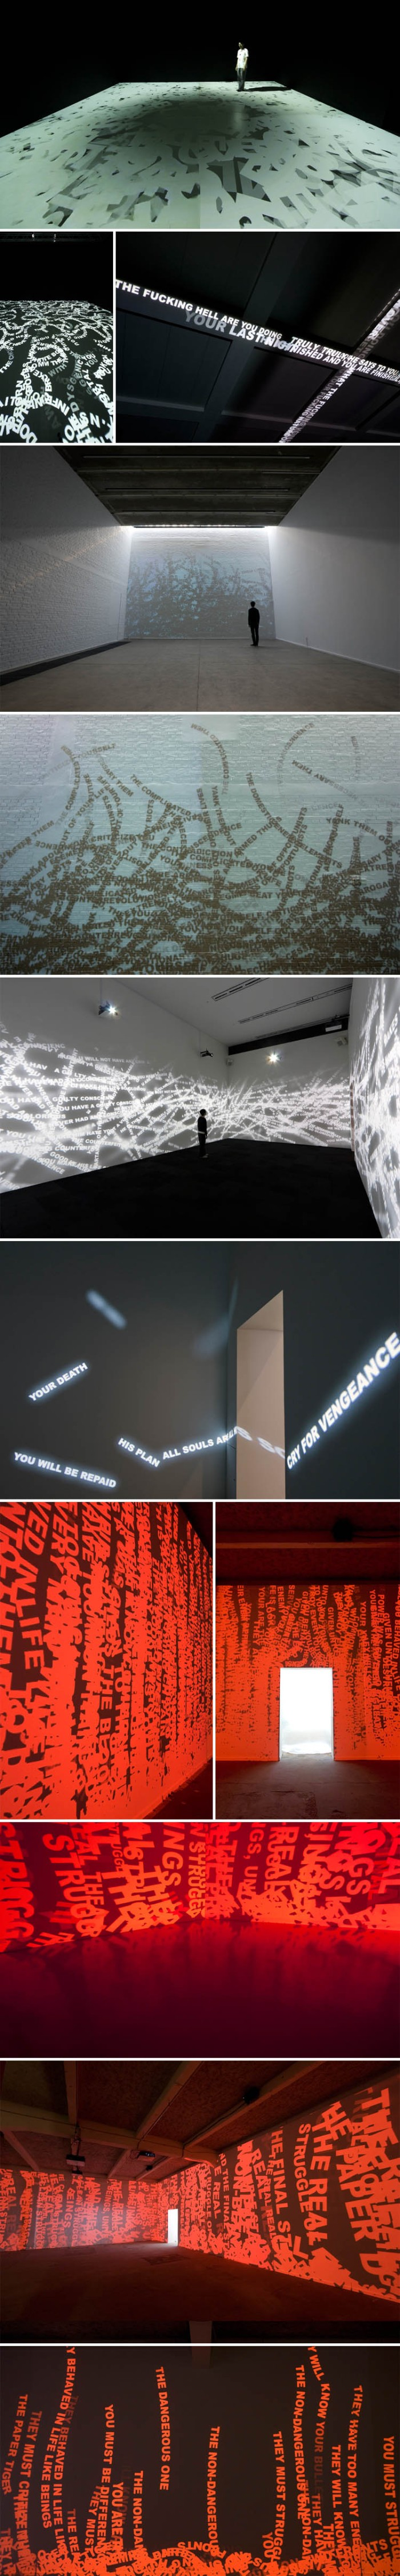 Dynamic projected type installations, Mori Art Museum